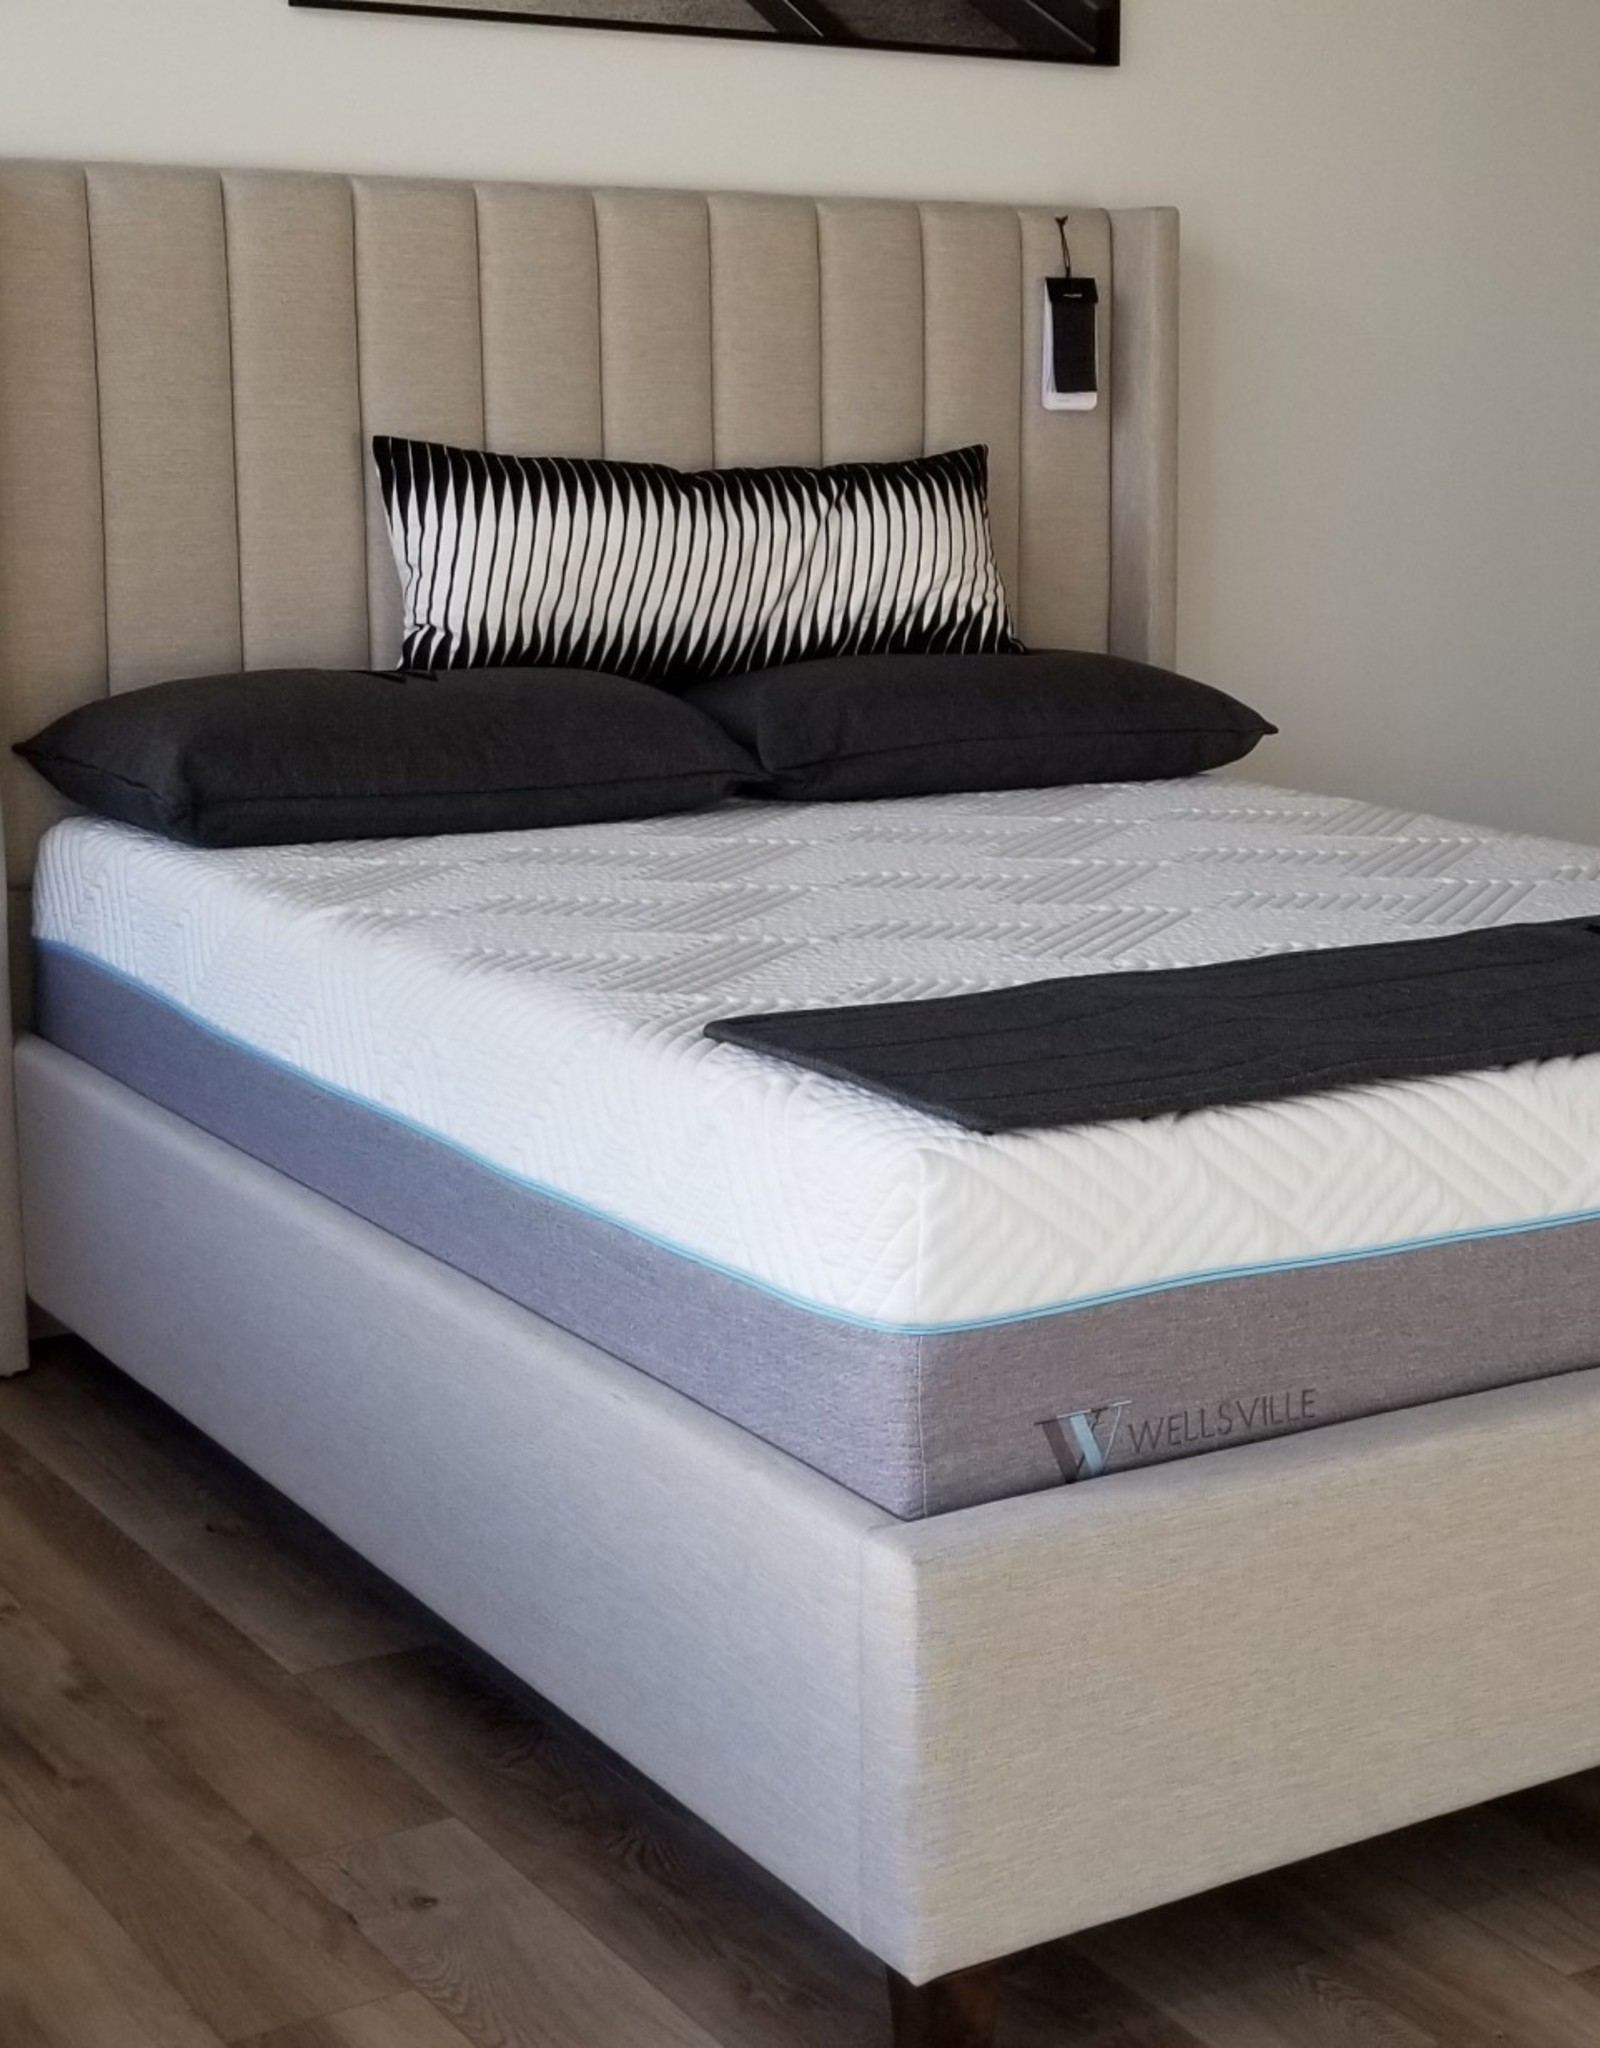 Malouf Blackwell Upholstered Bed